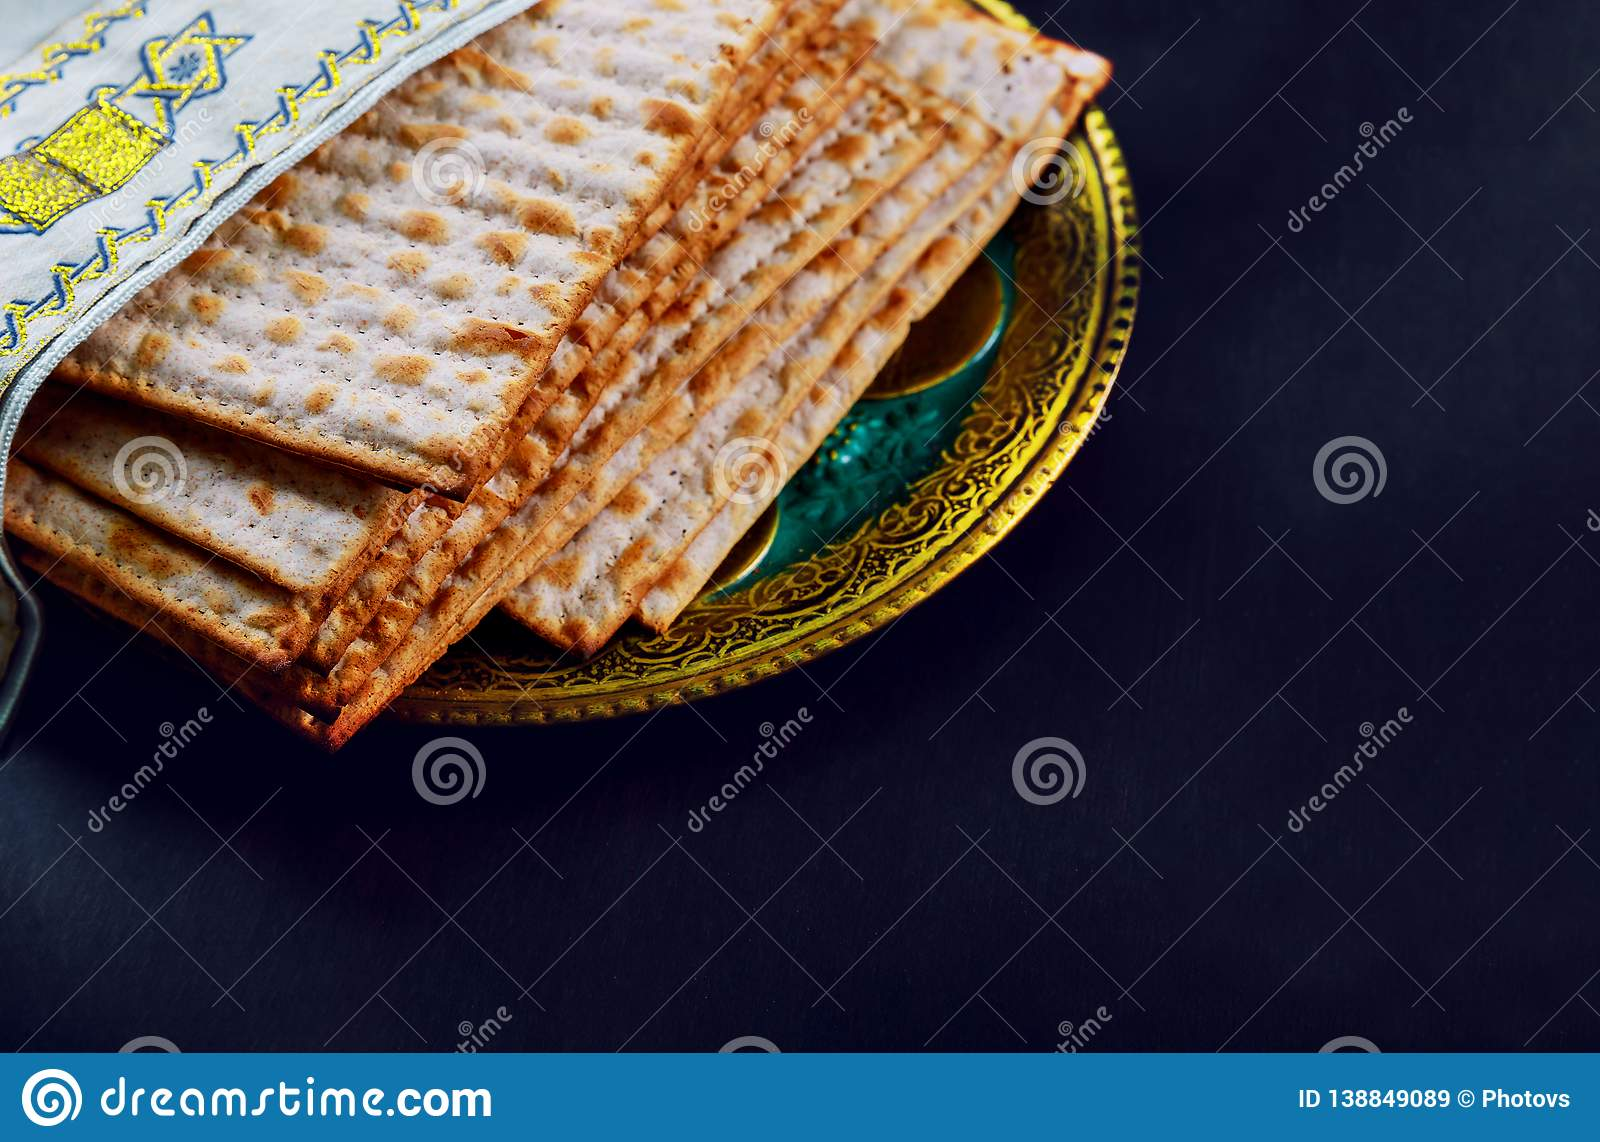 Close up of concept jewish holiday passover matzot and tallit the substitute for bread on the Jewish Passover holiday